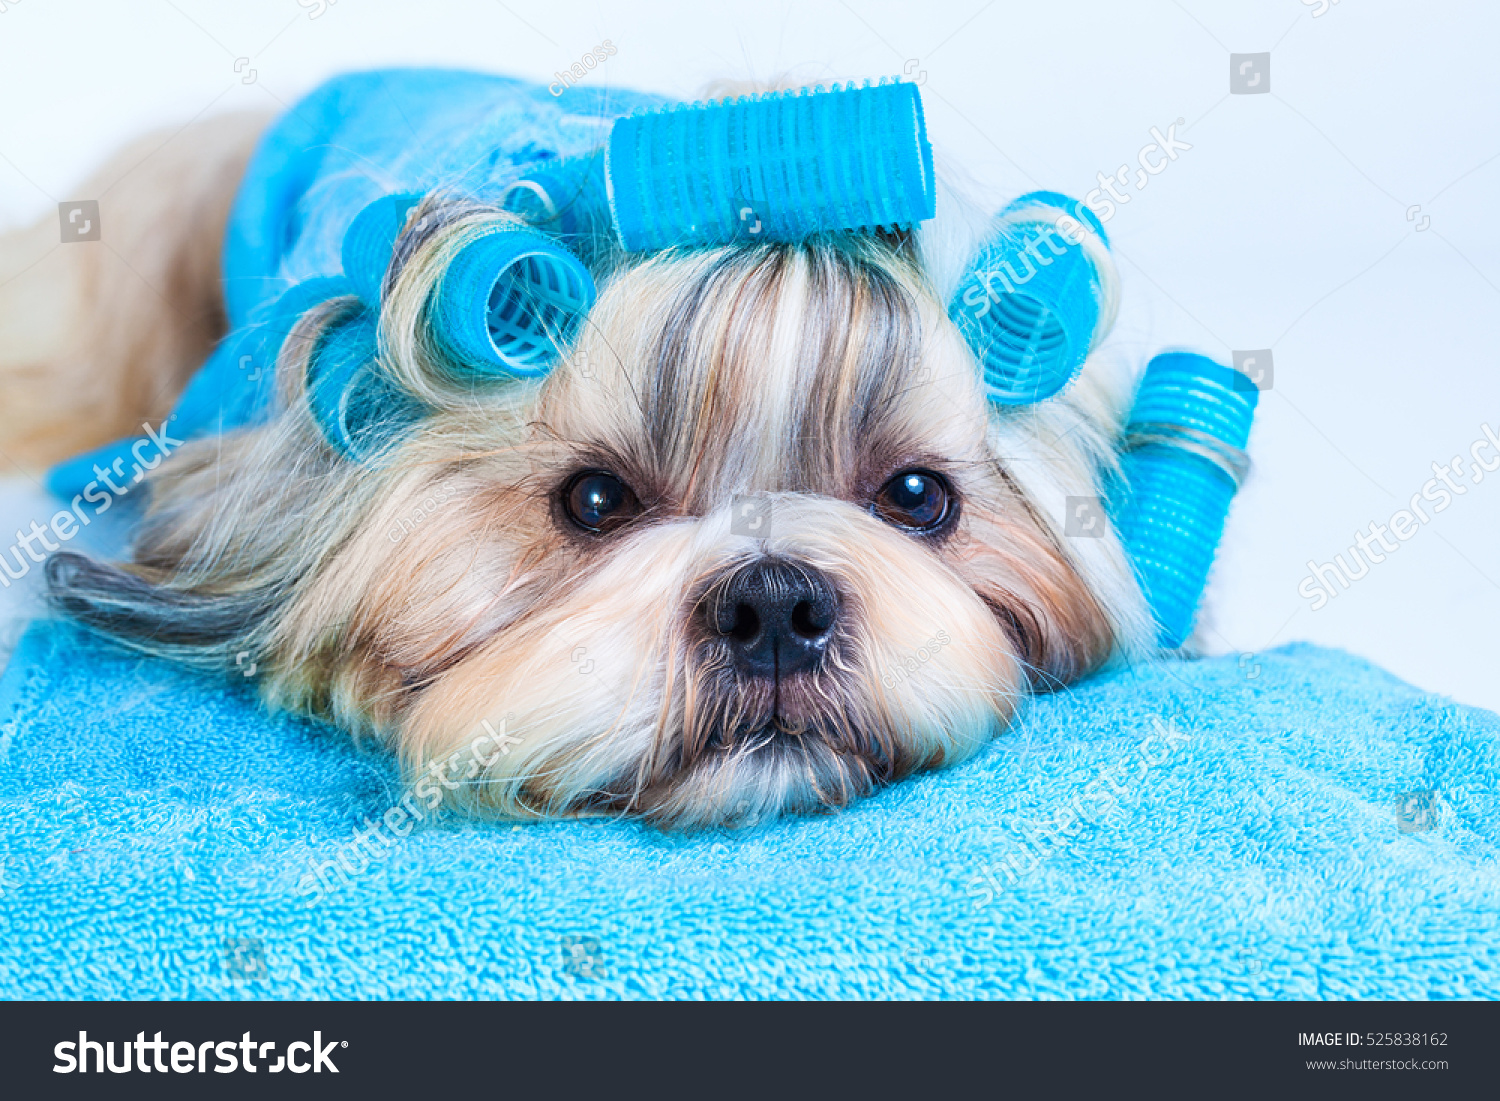 Shih Tzu Dog Hair Style Curlers Stock Photo Edit Now 525838162